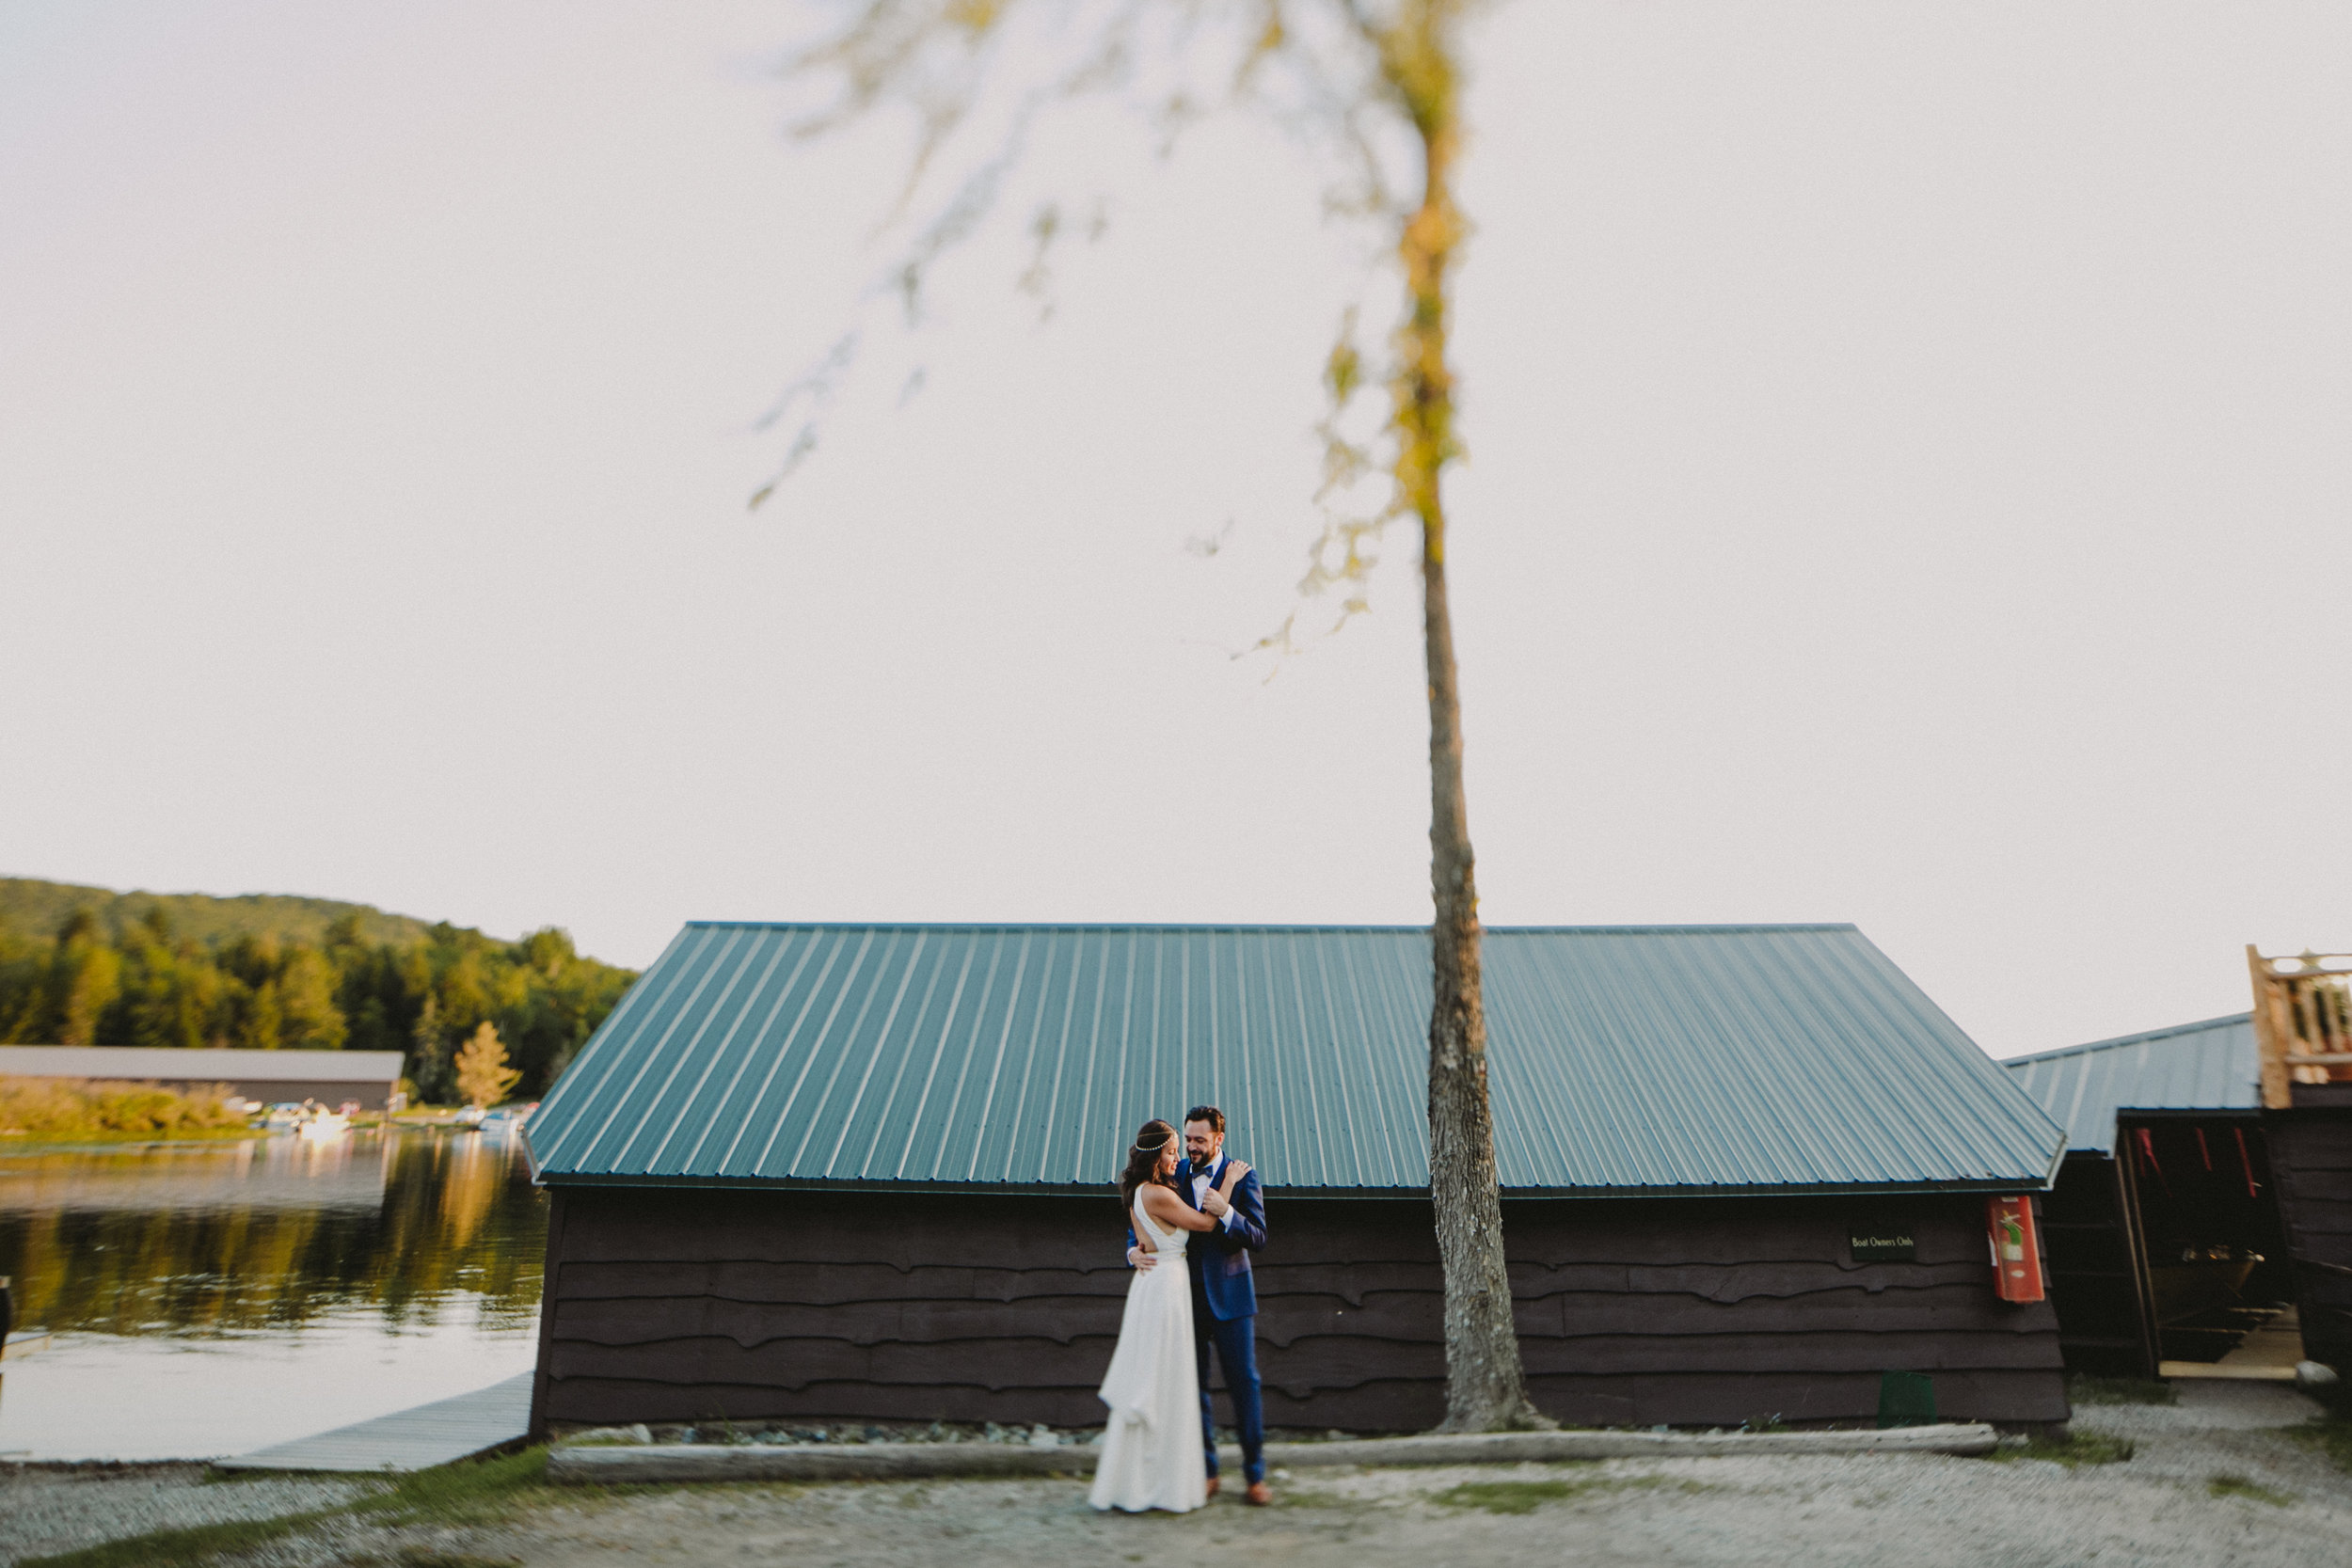 AmpersandBayResortWeddingChellise_Michael_Photography_Chellise_Michael-478.jpg